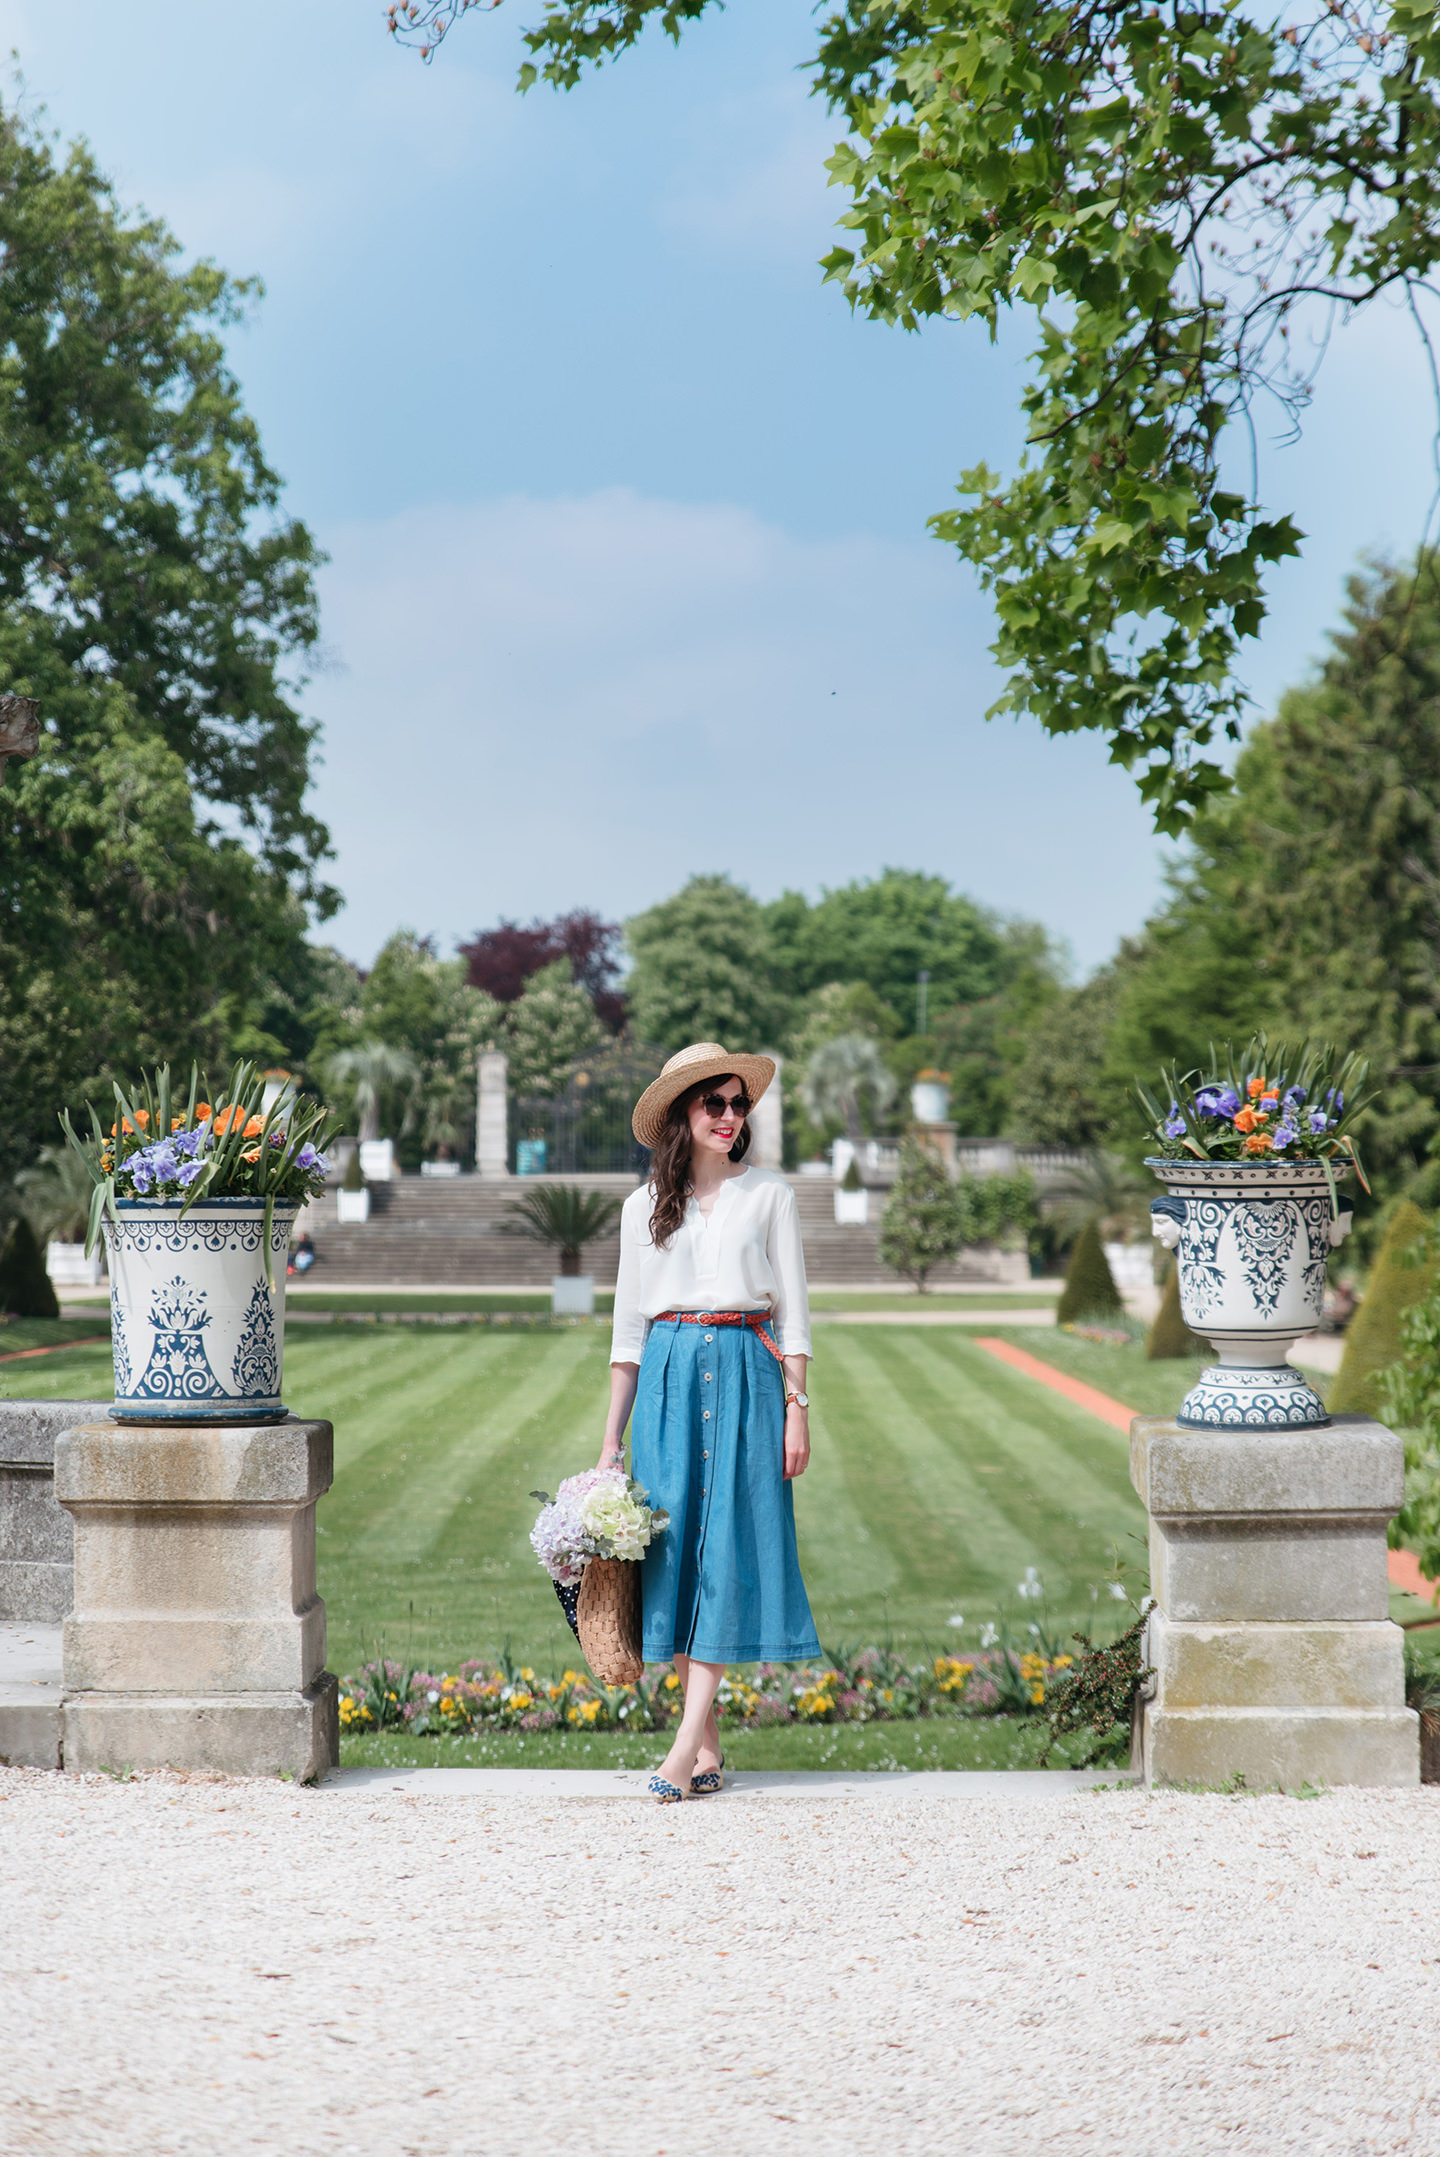 Blog-Mode-And-The-City-Looks-Jardin-Serres-Auteuil-Devernois-10